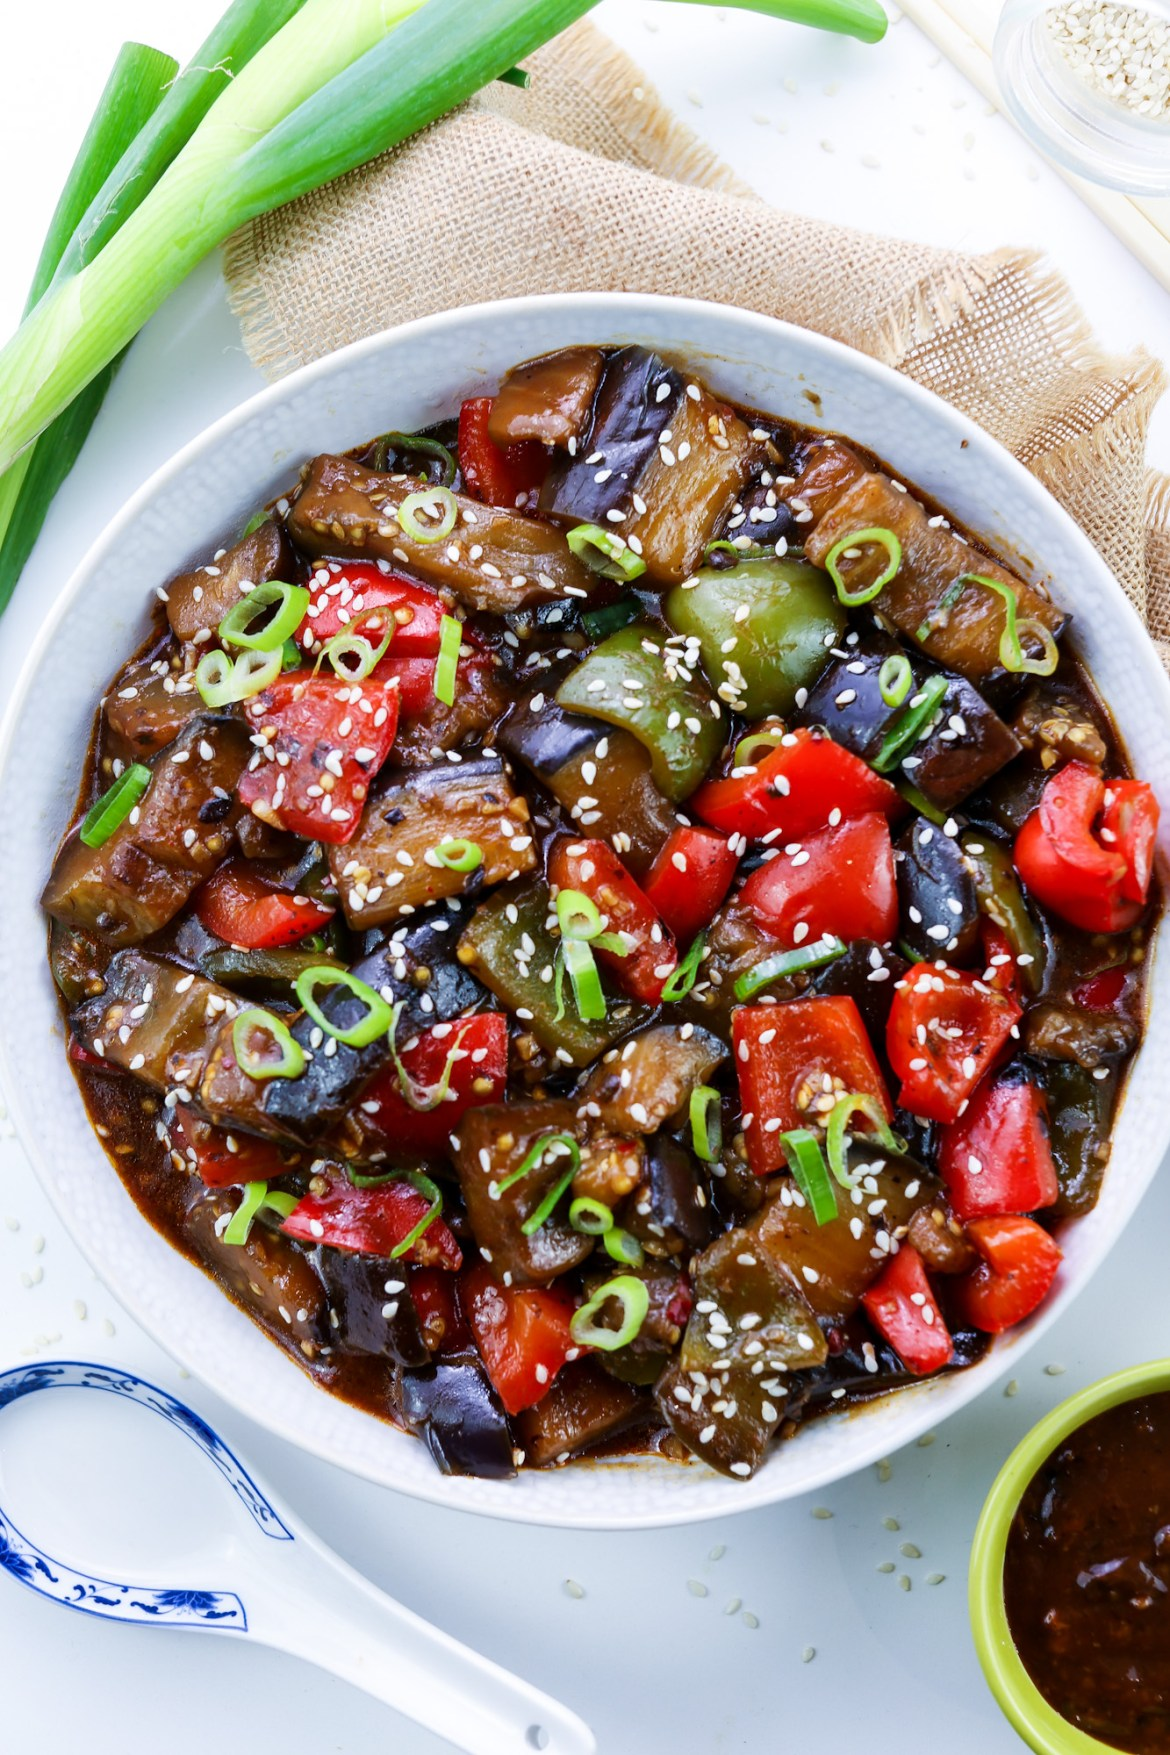 Vegan Aubergine & Peppers in Black Bean Sauce in a white bowl topped with green onions and sesame seeds